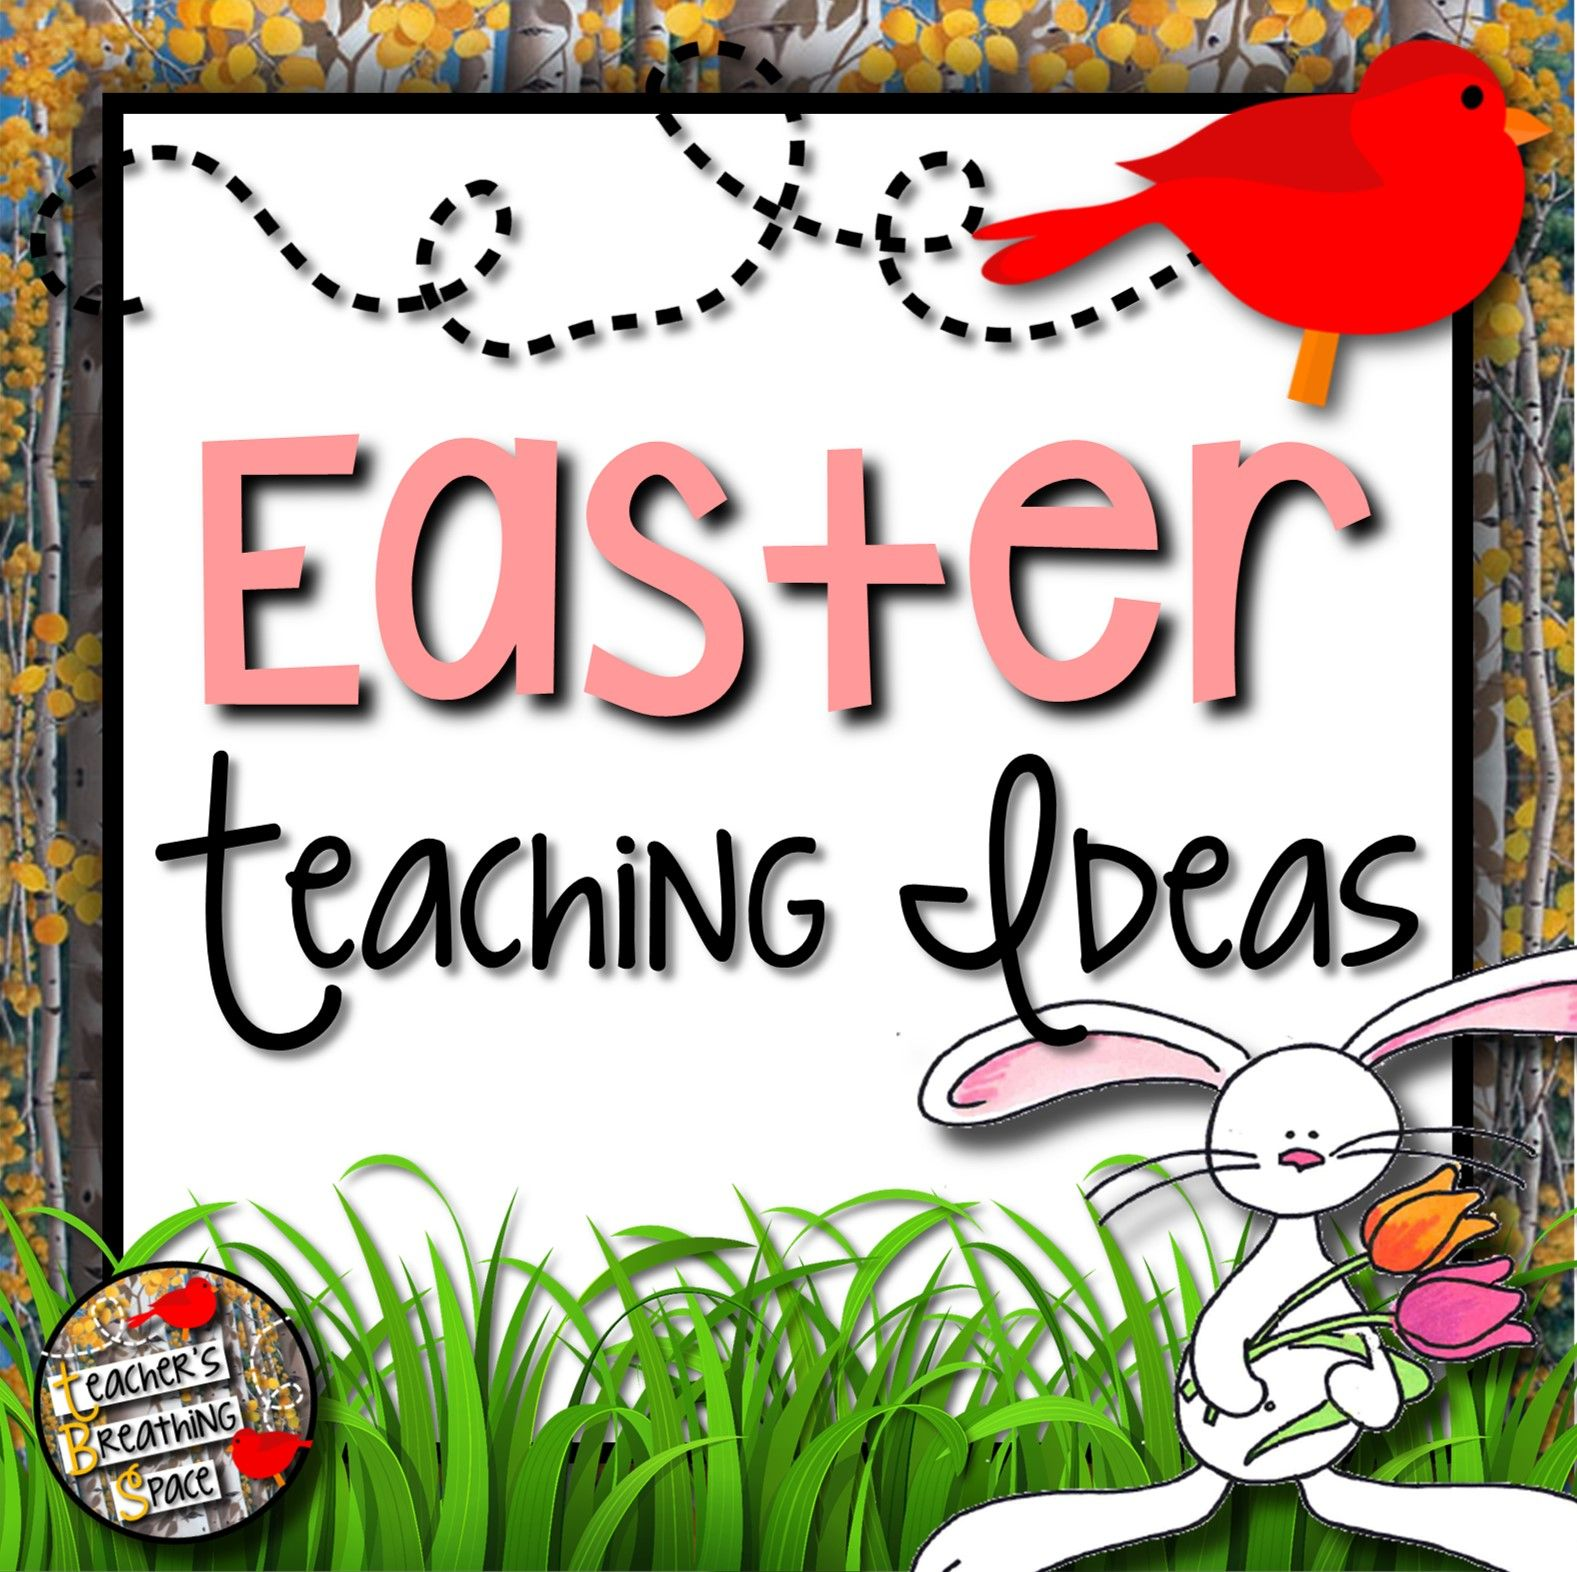 Pin By Teacher S Breathing Space On Easter Teaching Ideas